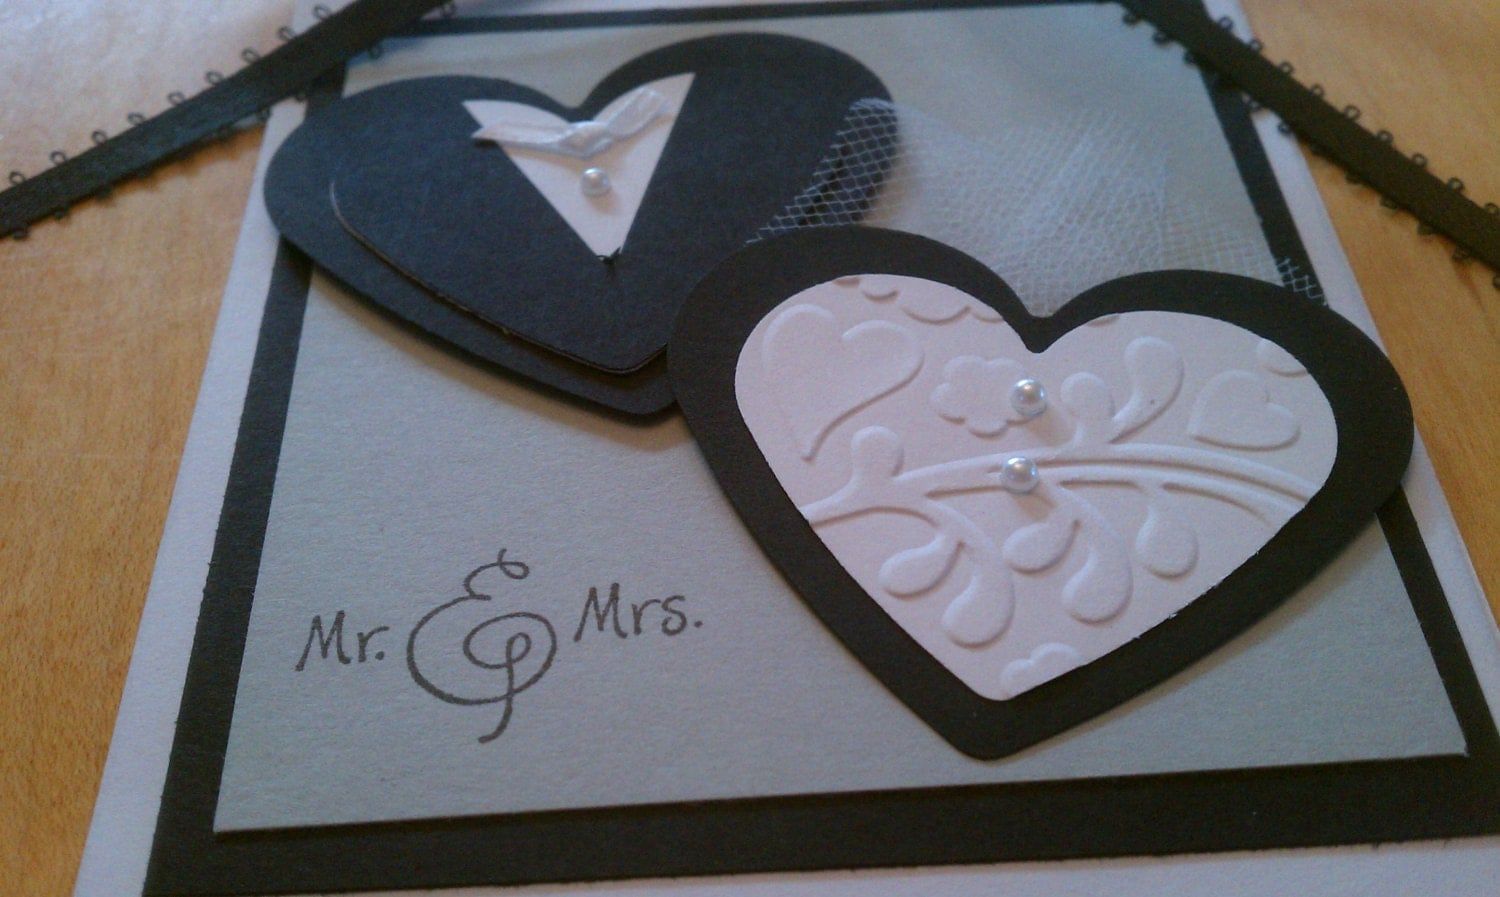 Handmade Wedding Gifts For Bride And Groom: Handmade Bride & Groom Hearts Wedding Gift Tag Card